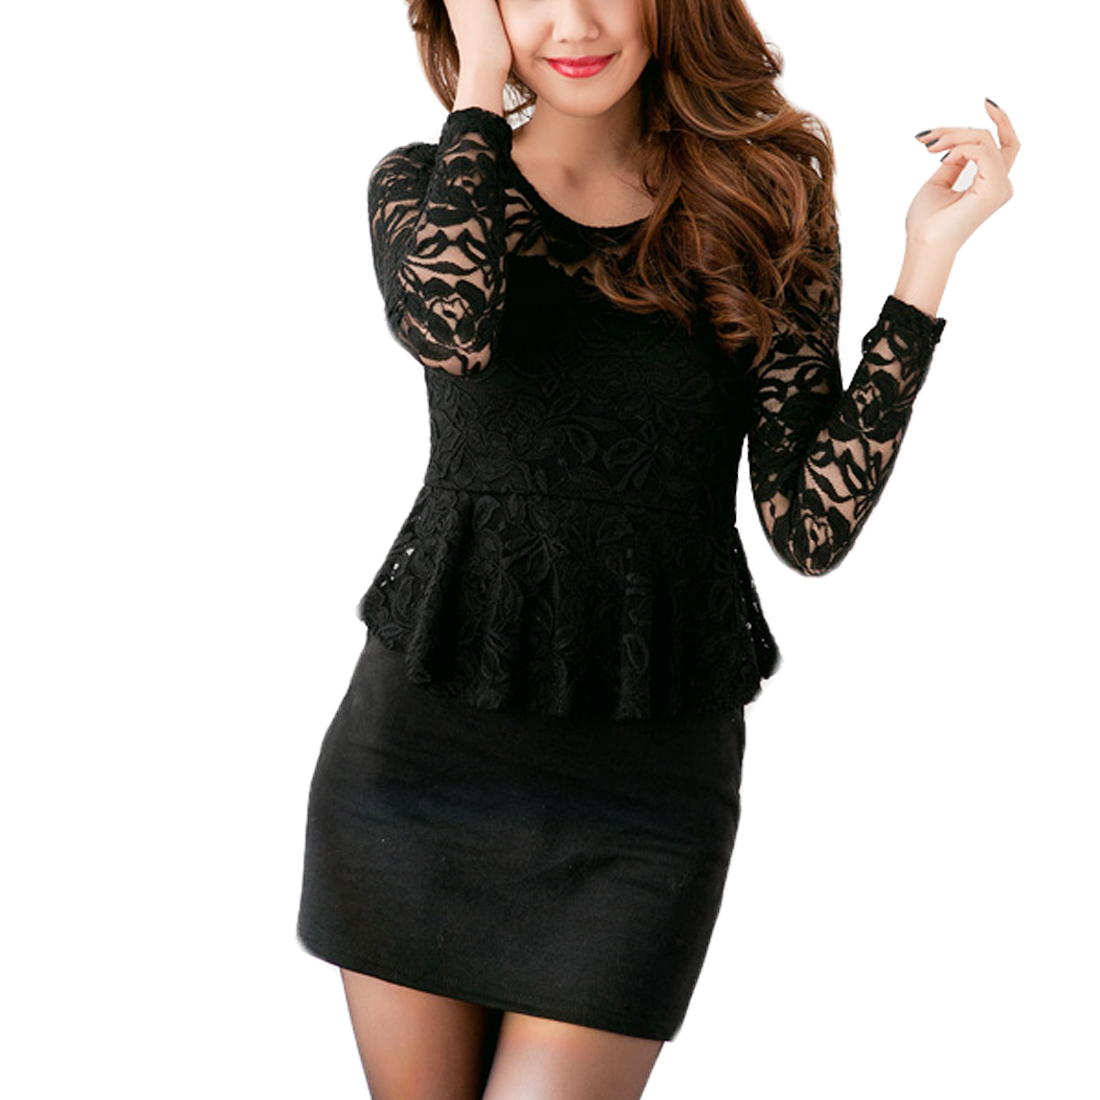 Round Neck Solid Black Closefitting Mini Dress XS for Women